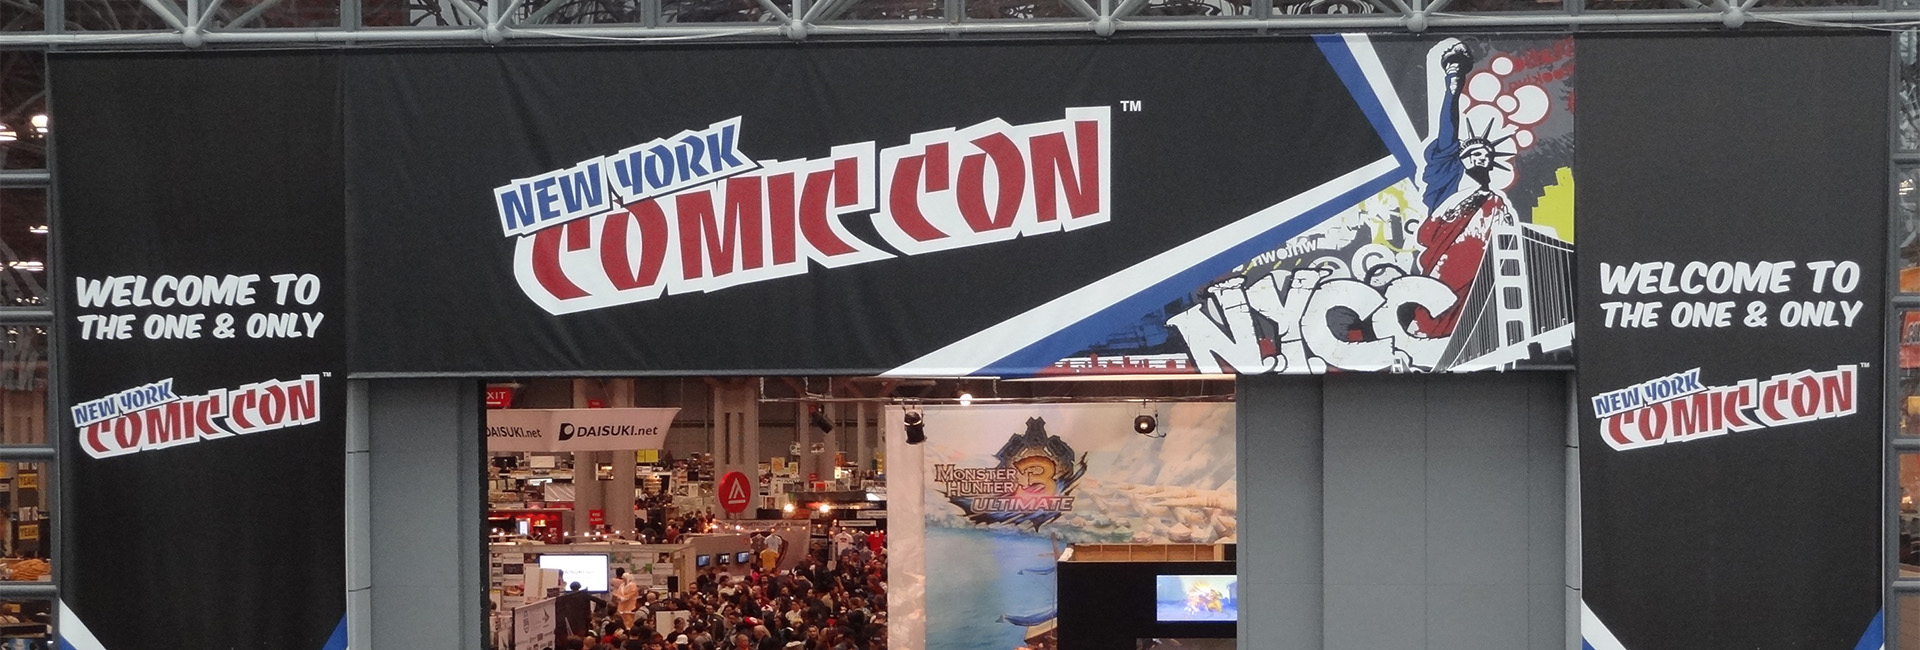 NYCC Article Header